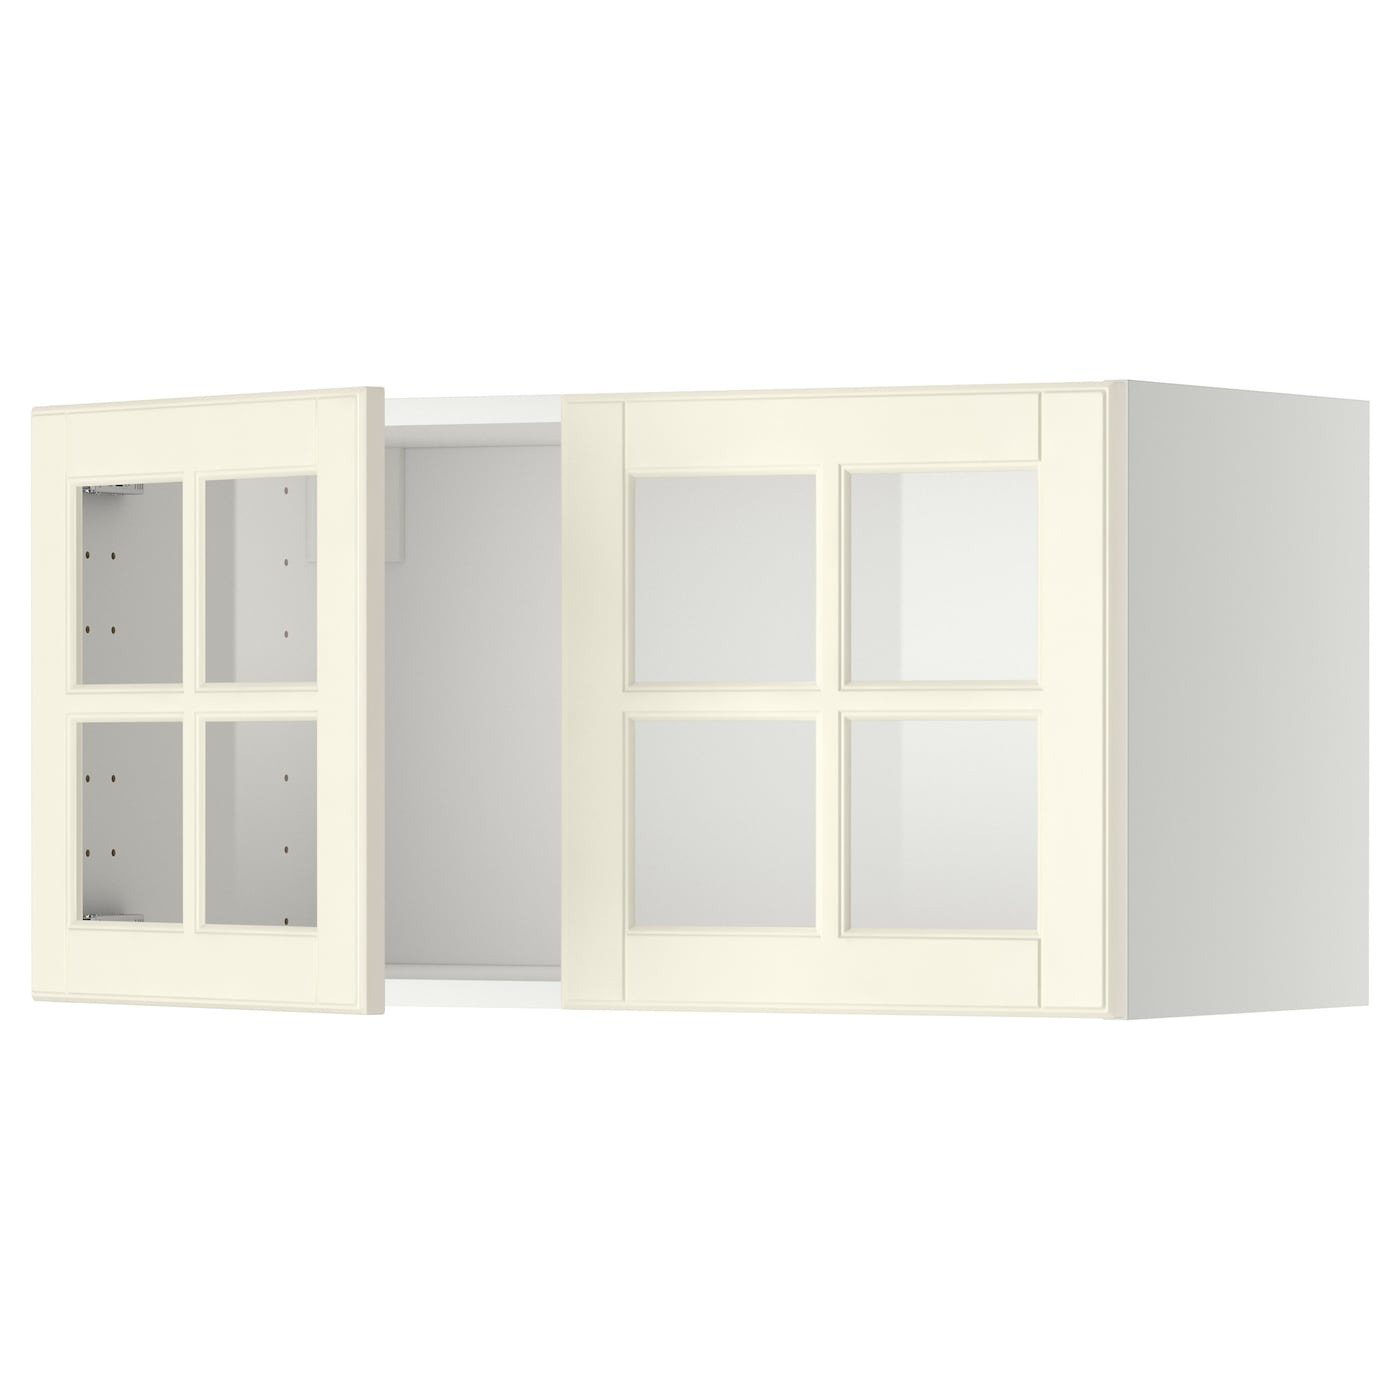 Metod wall cabinet with 2 glass doors white bodbyn off - Ikea cabinet doors on existing cabinets ...